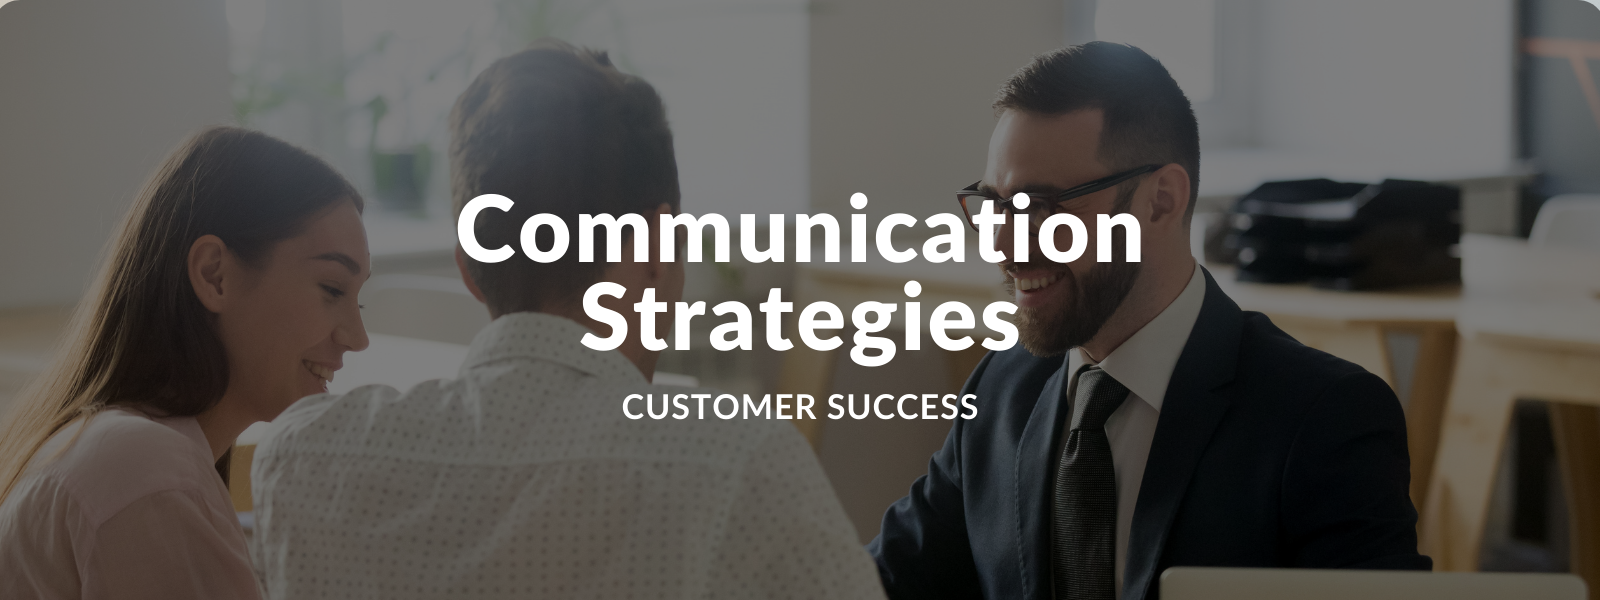 Delight your customers with communication strategies Ebook Talaera C030